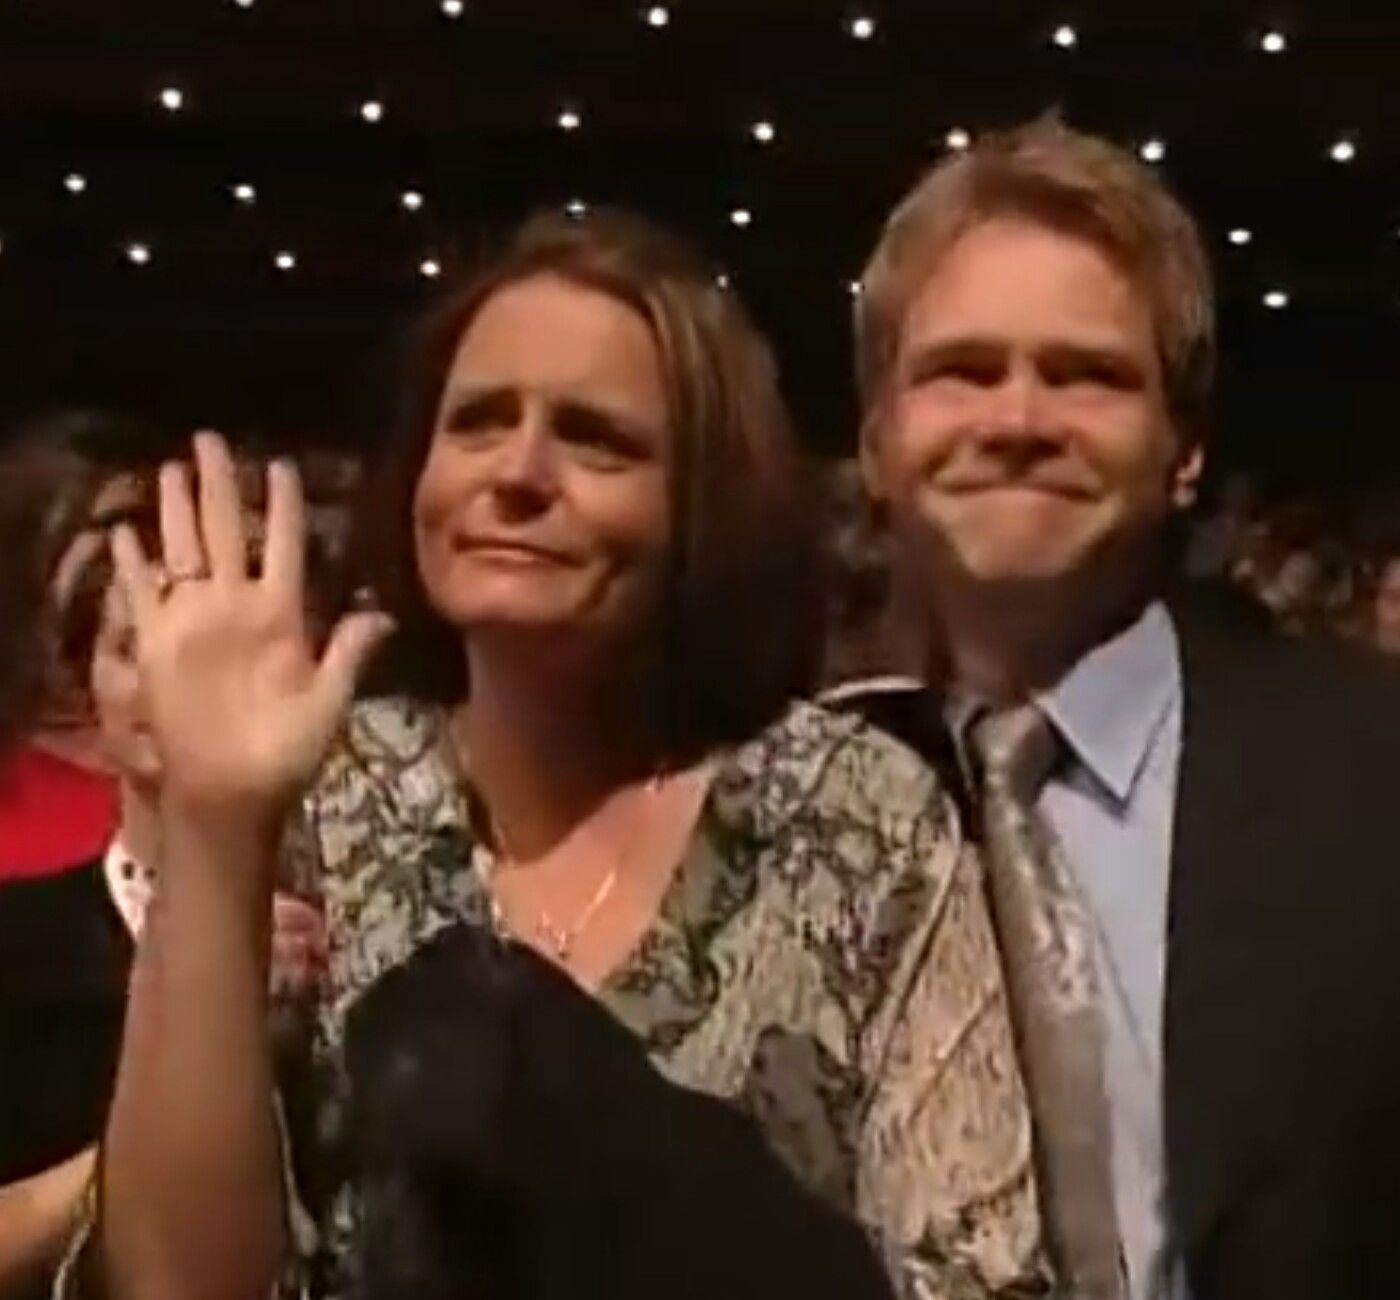 Steven curtis chapman with his beautiful wife mary beth steven steven curtis chapman with his beautiful wife mary beth stopboris Gallery